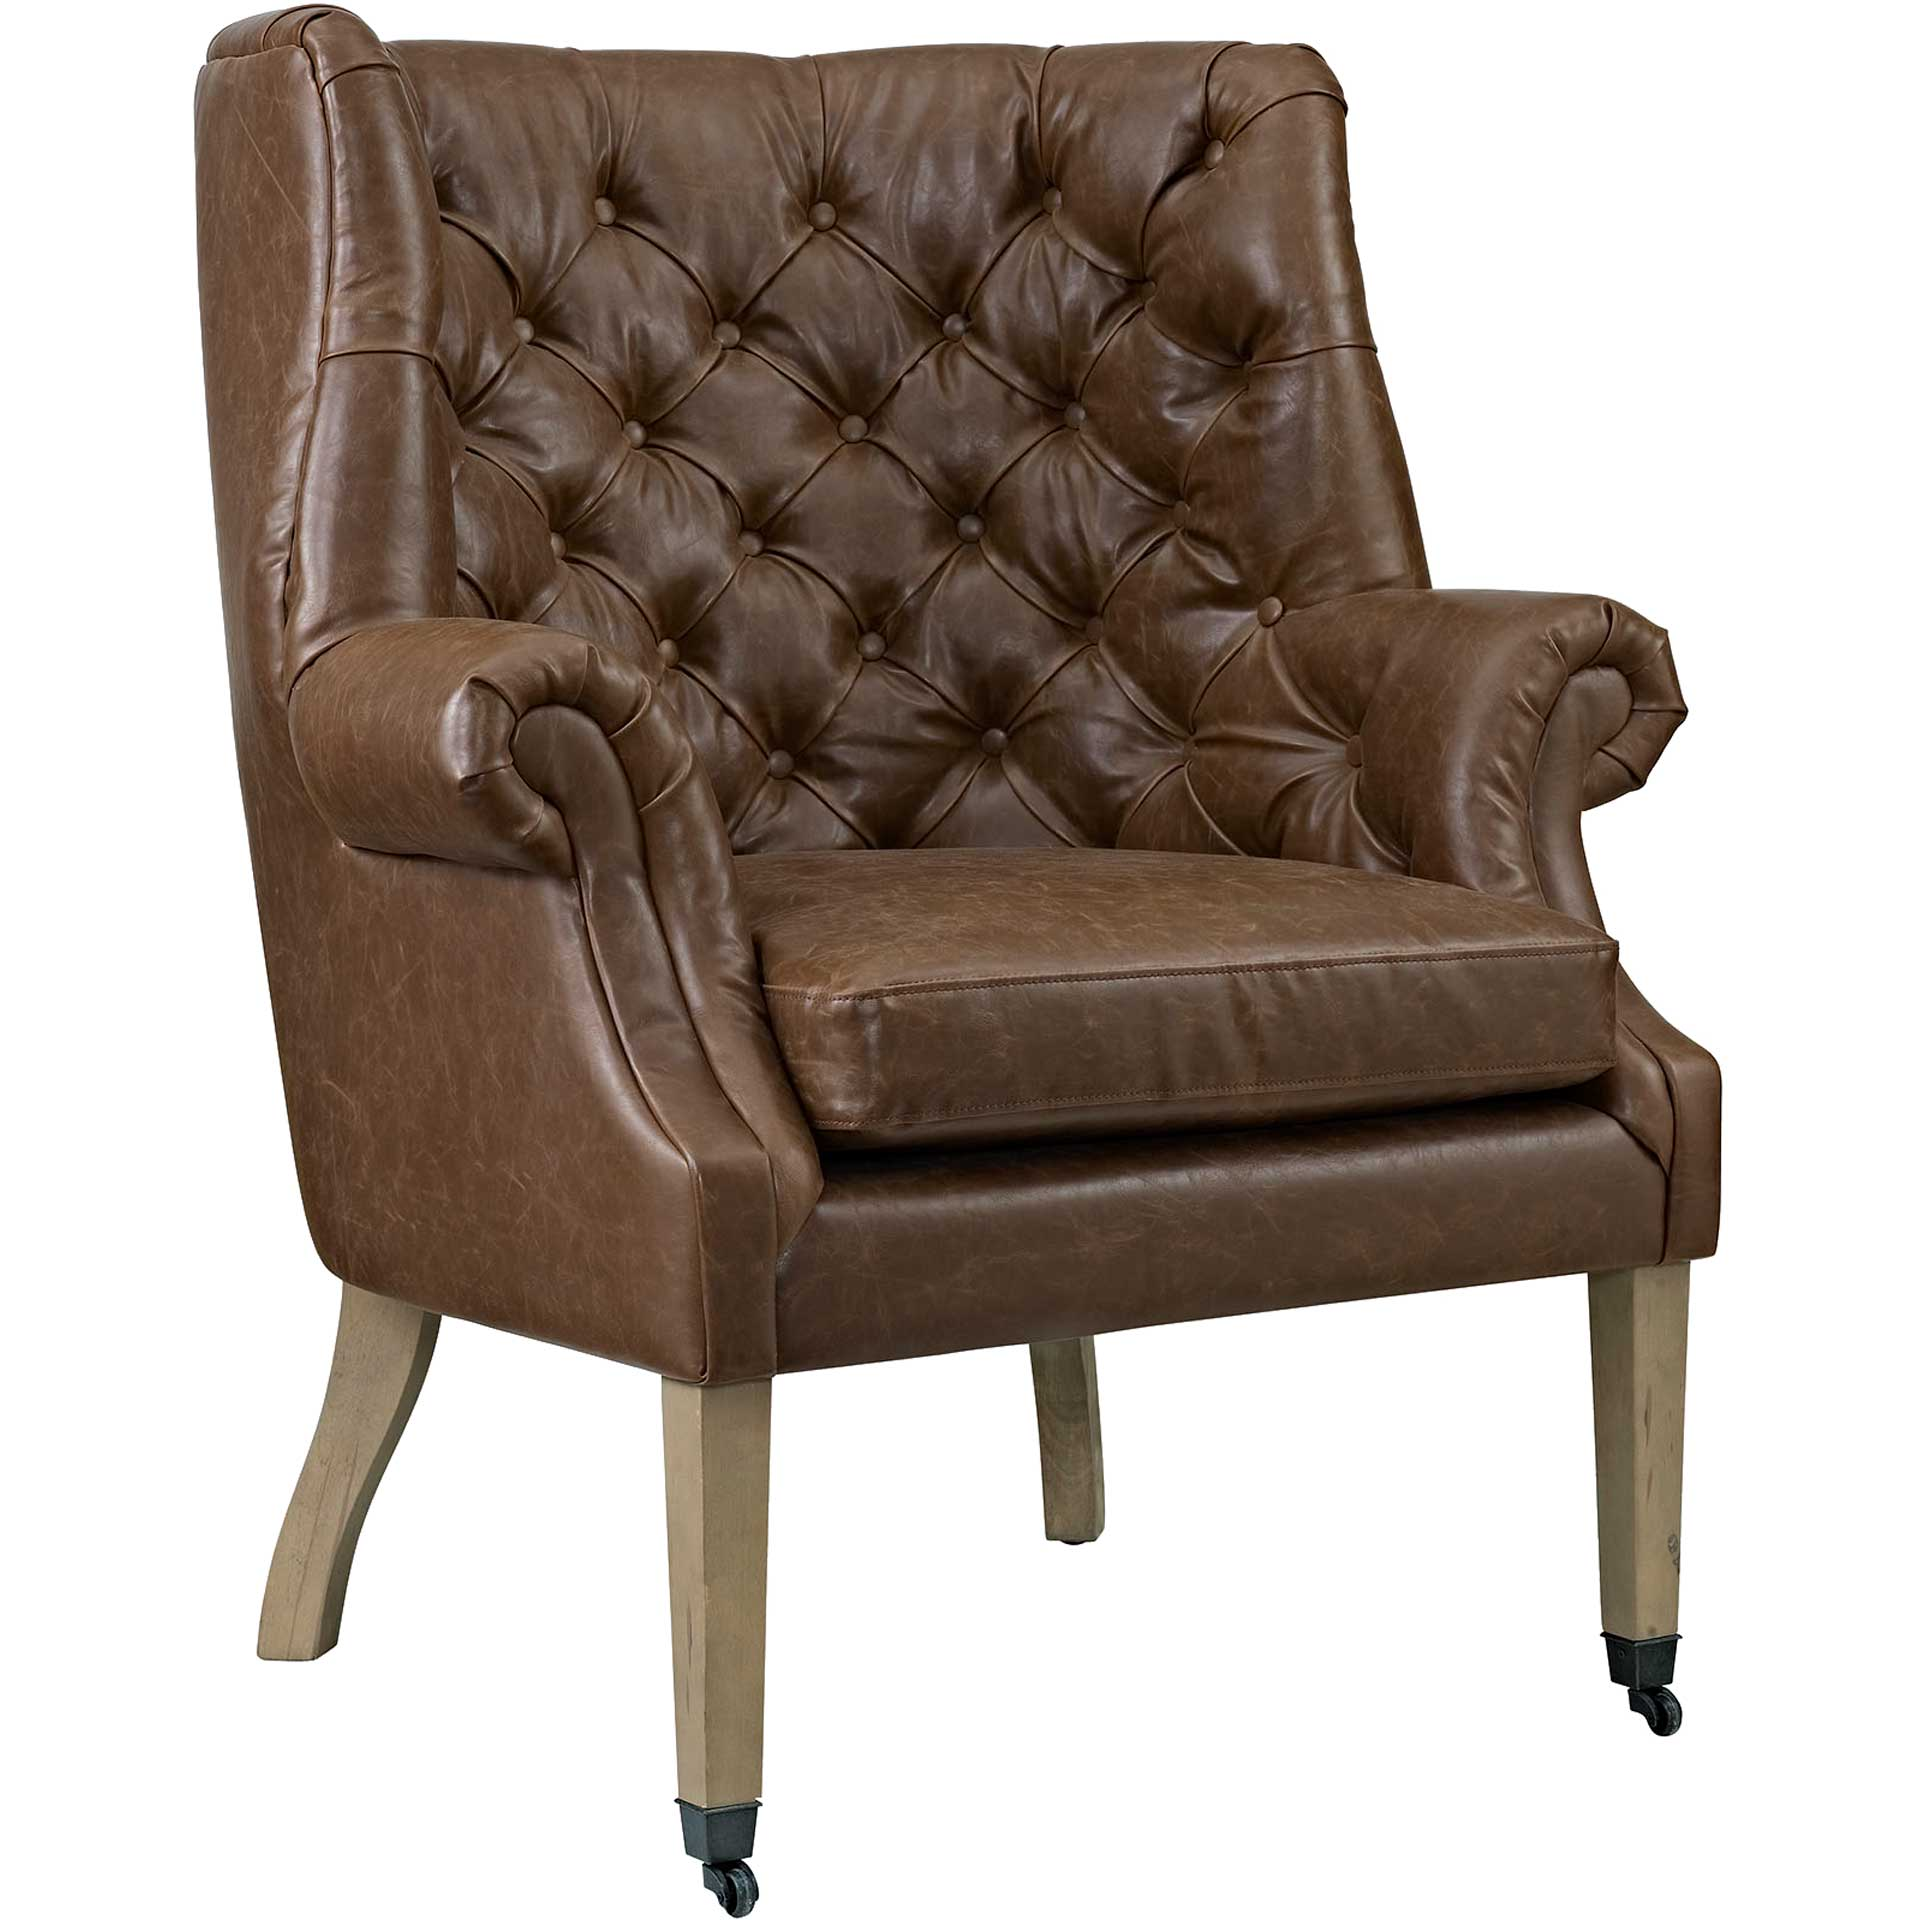 Camron Upholstered Vinyl Lounge Chair Brown